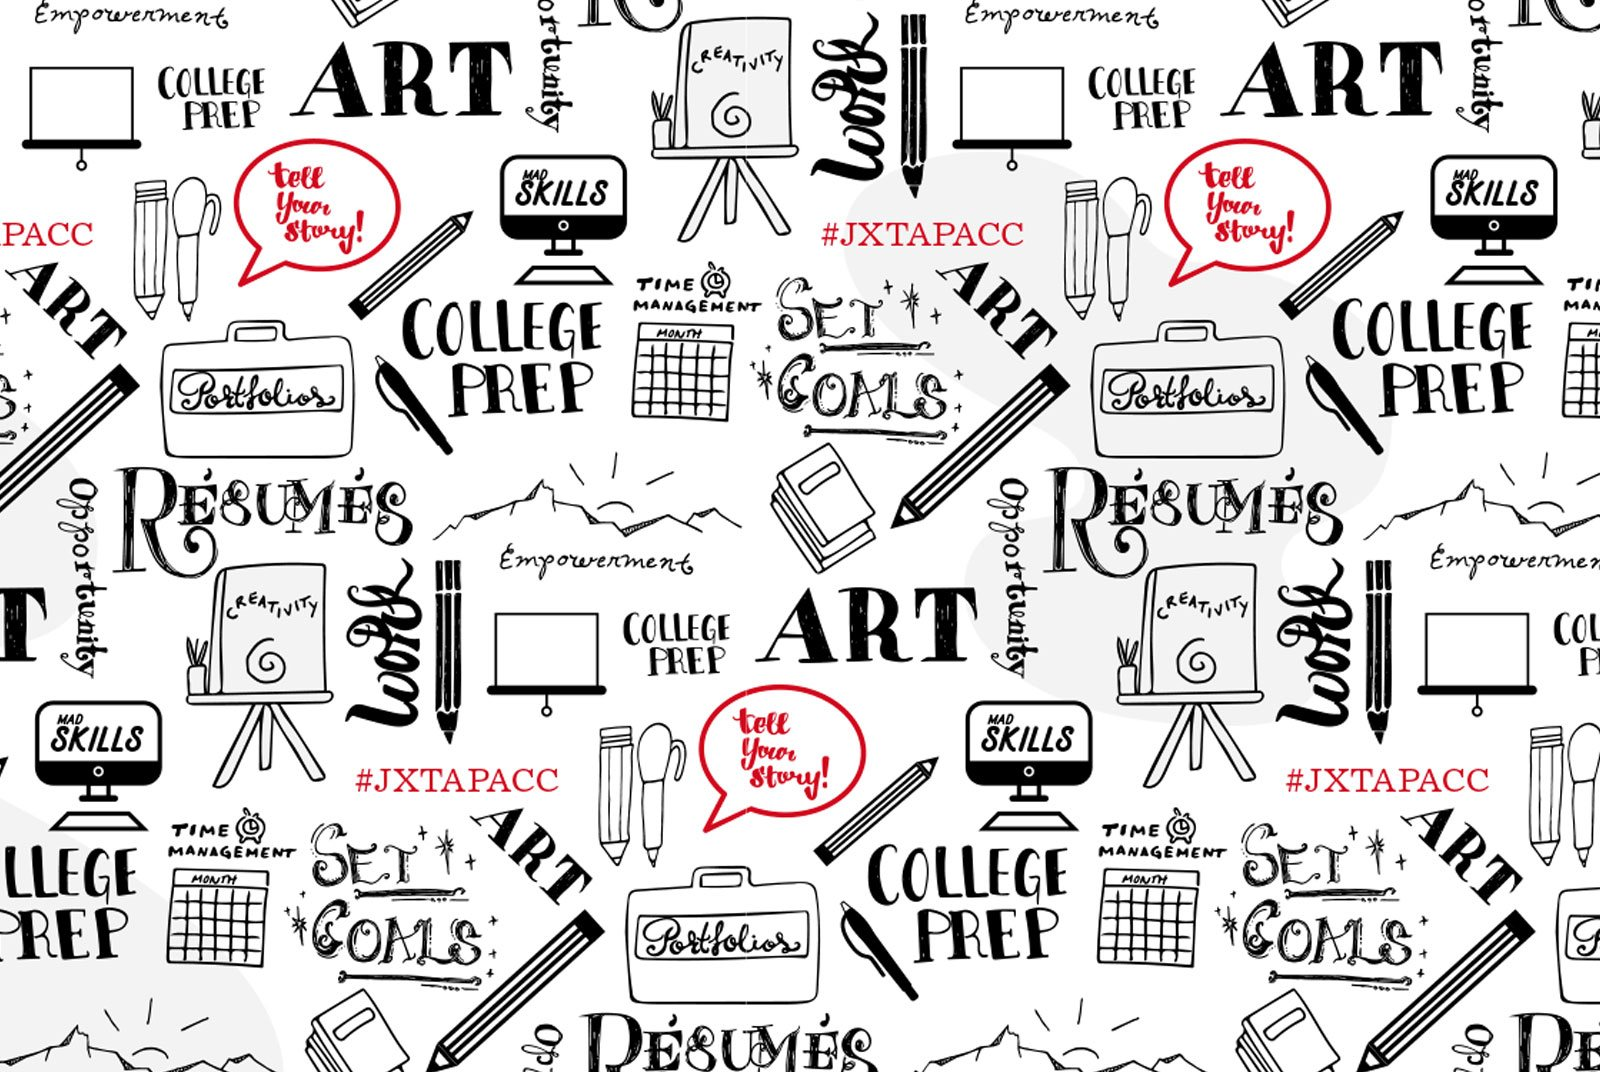 An illustration of different icons including pencils, notebooks, easels, computers, and the words art, college prep, set goals, art